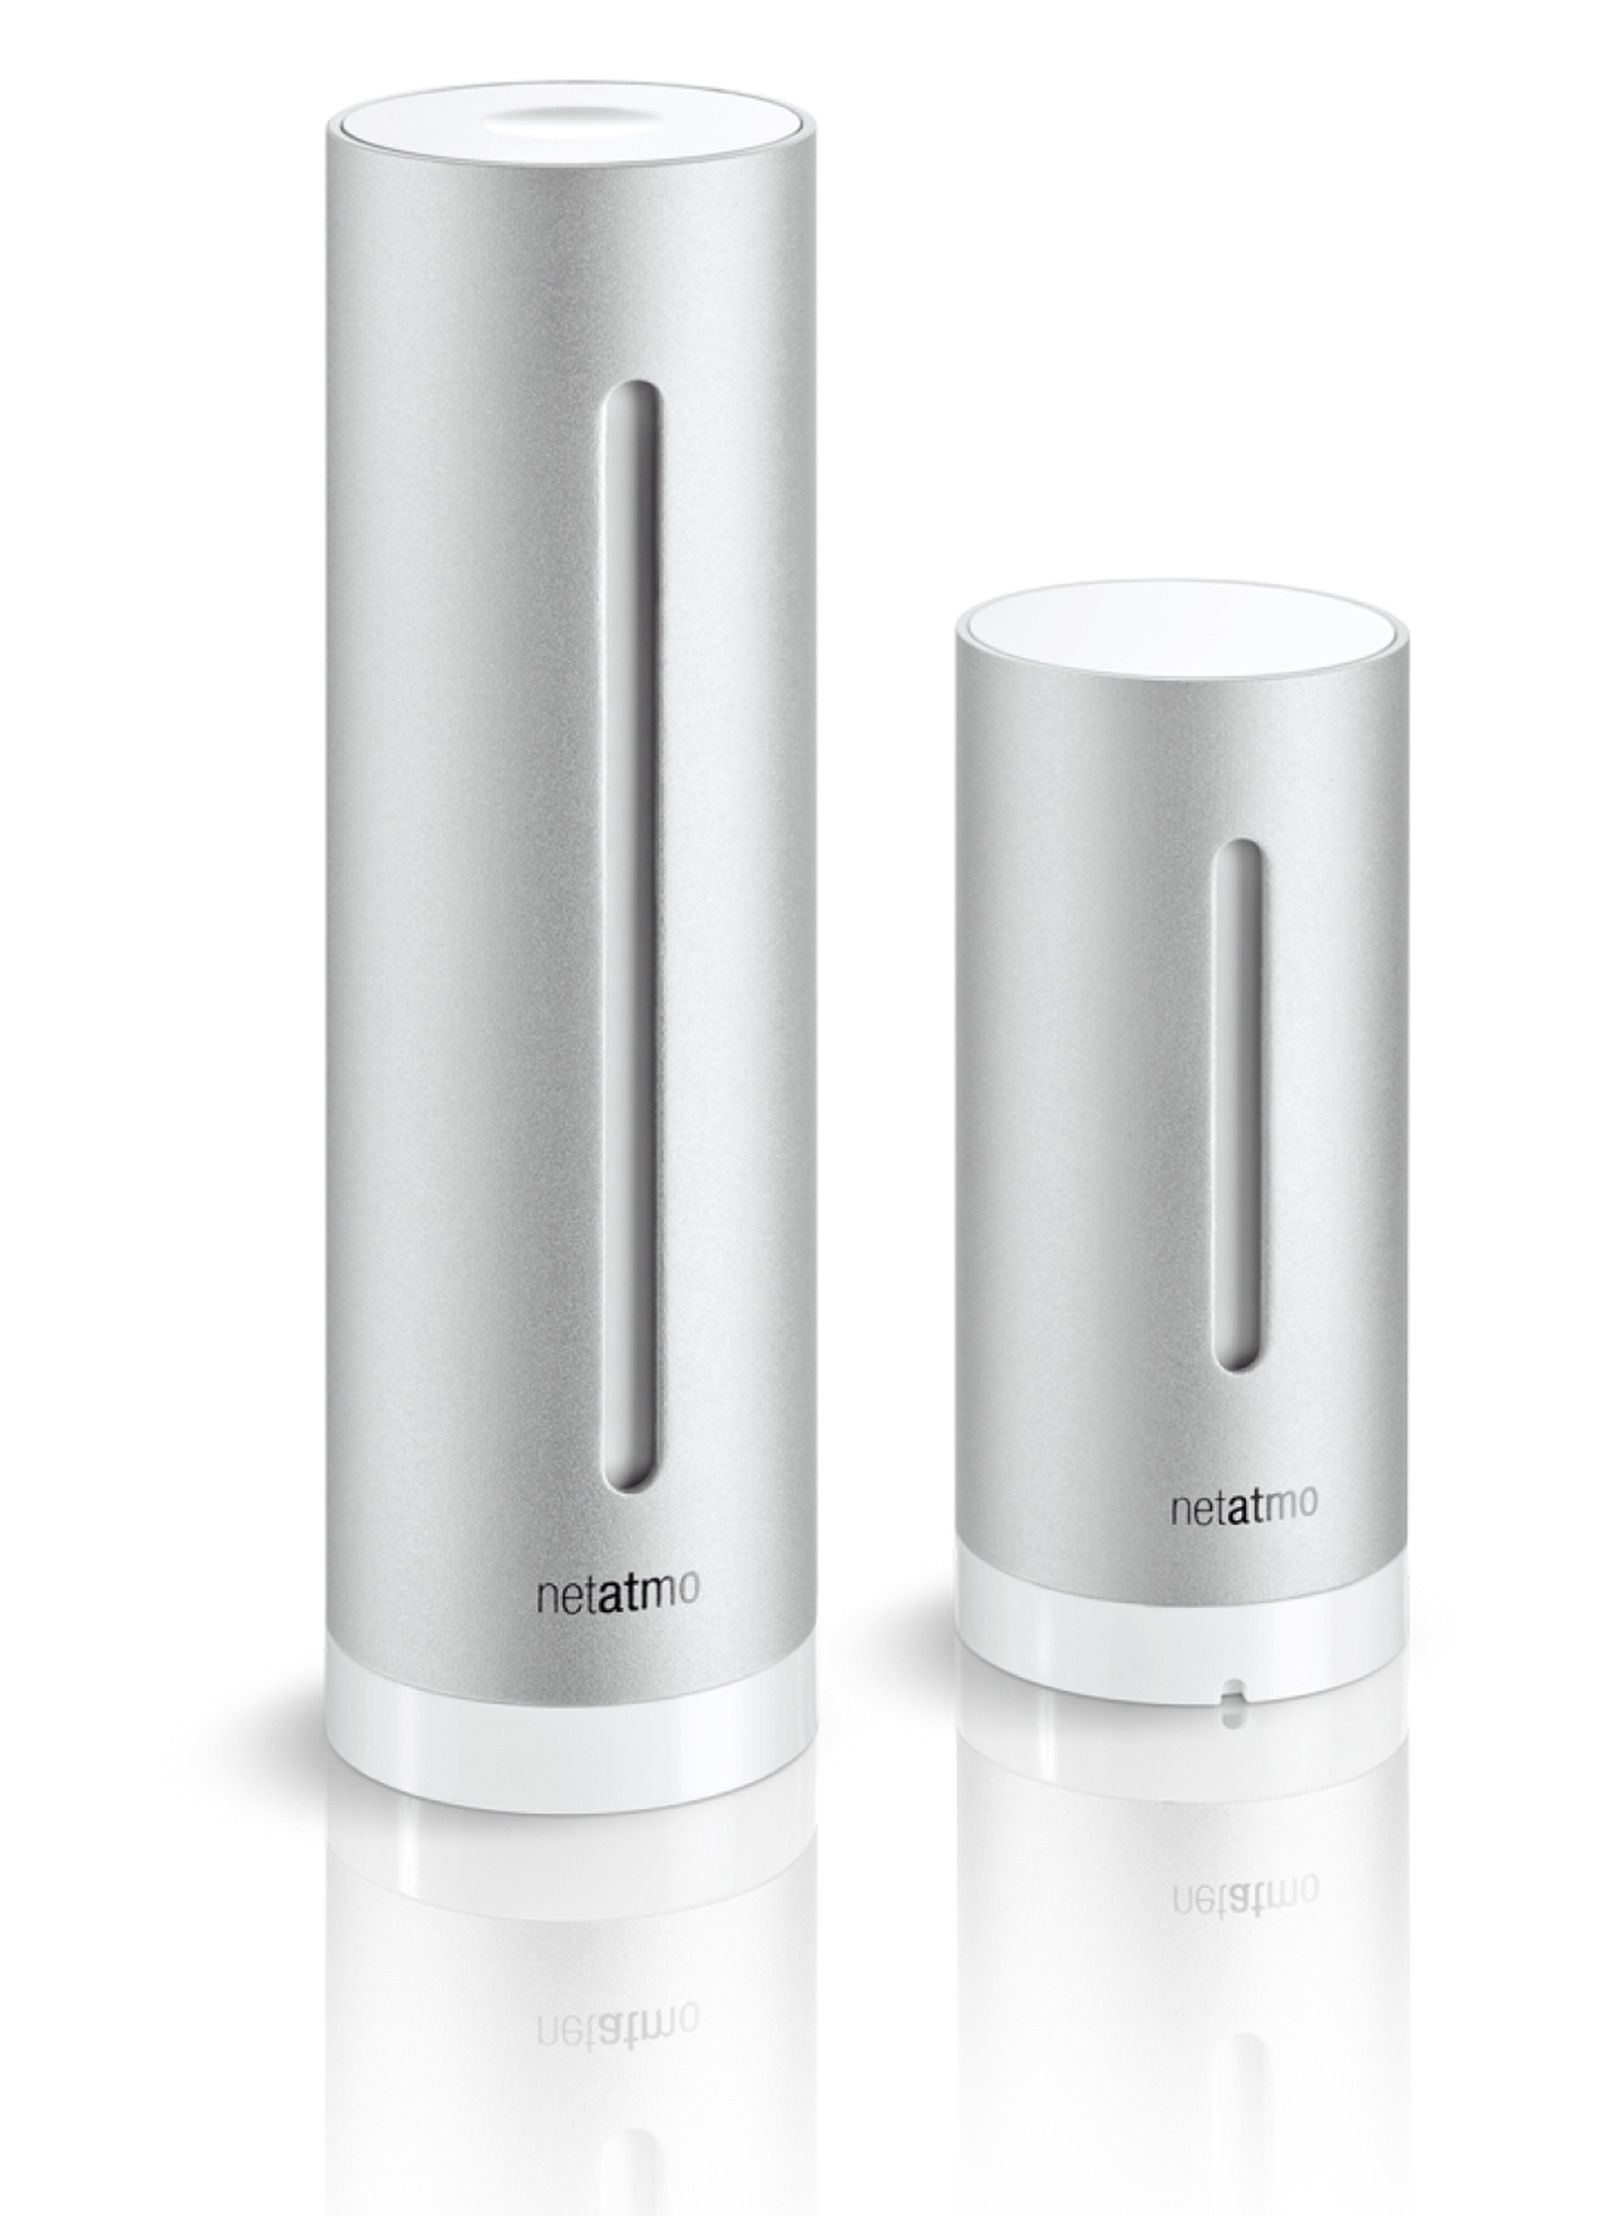 Netatmo personal indoor & outdoor weather station